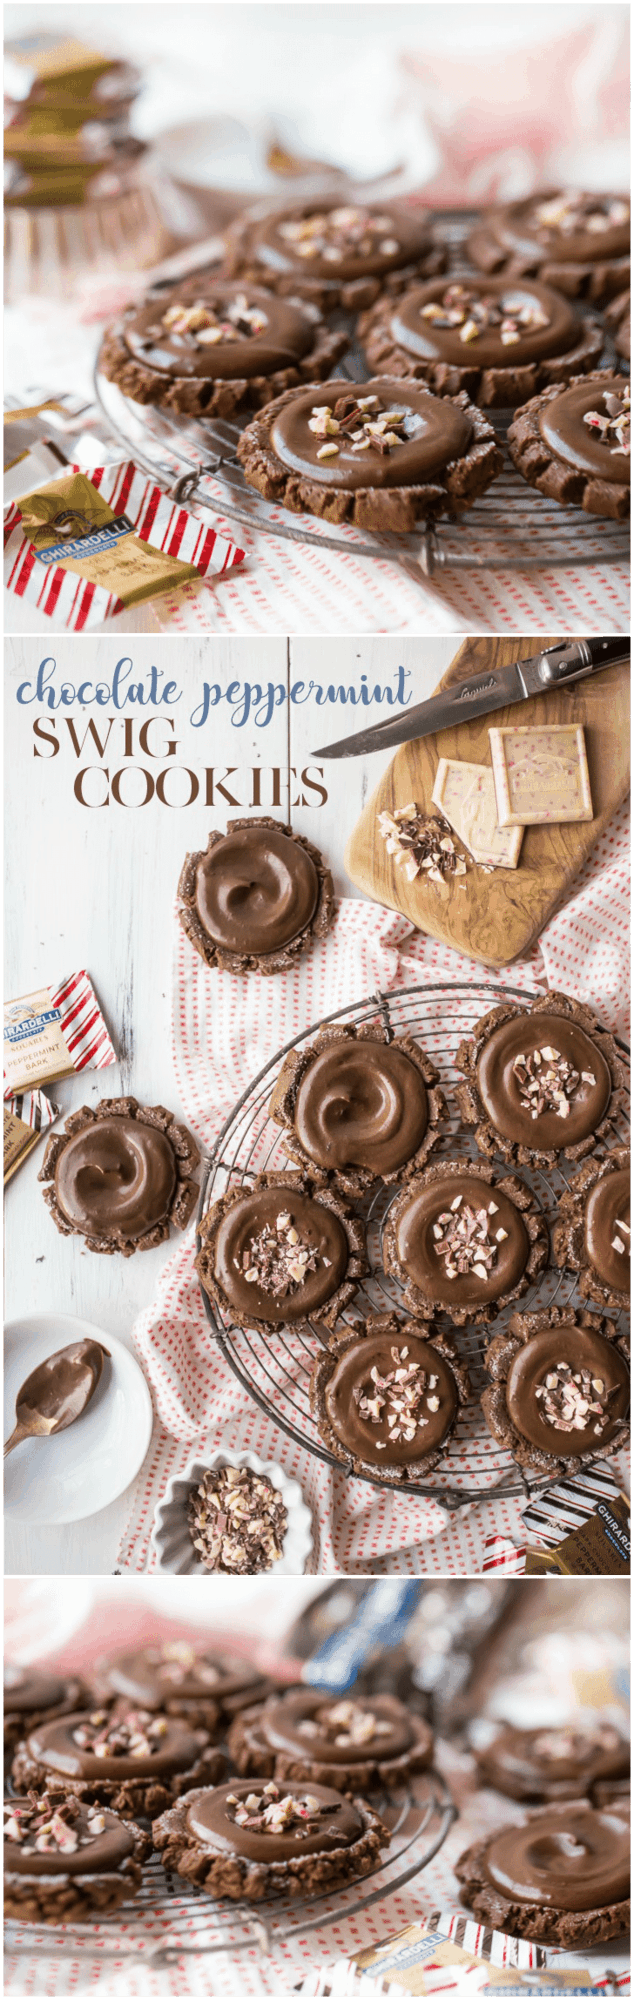 Chocolate Peppermint Swig Cookies: so chubby and soft, with tons of chocolate flavor, and a hint of cool peppermint. These stayed soft for days, and that sour cream frosting was outta this world! #food #desserts #cookies #chocolate #peppermint #christmas #sugarcookies #swigcookies #recipes